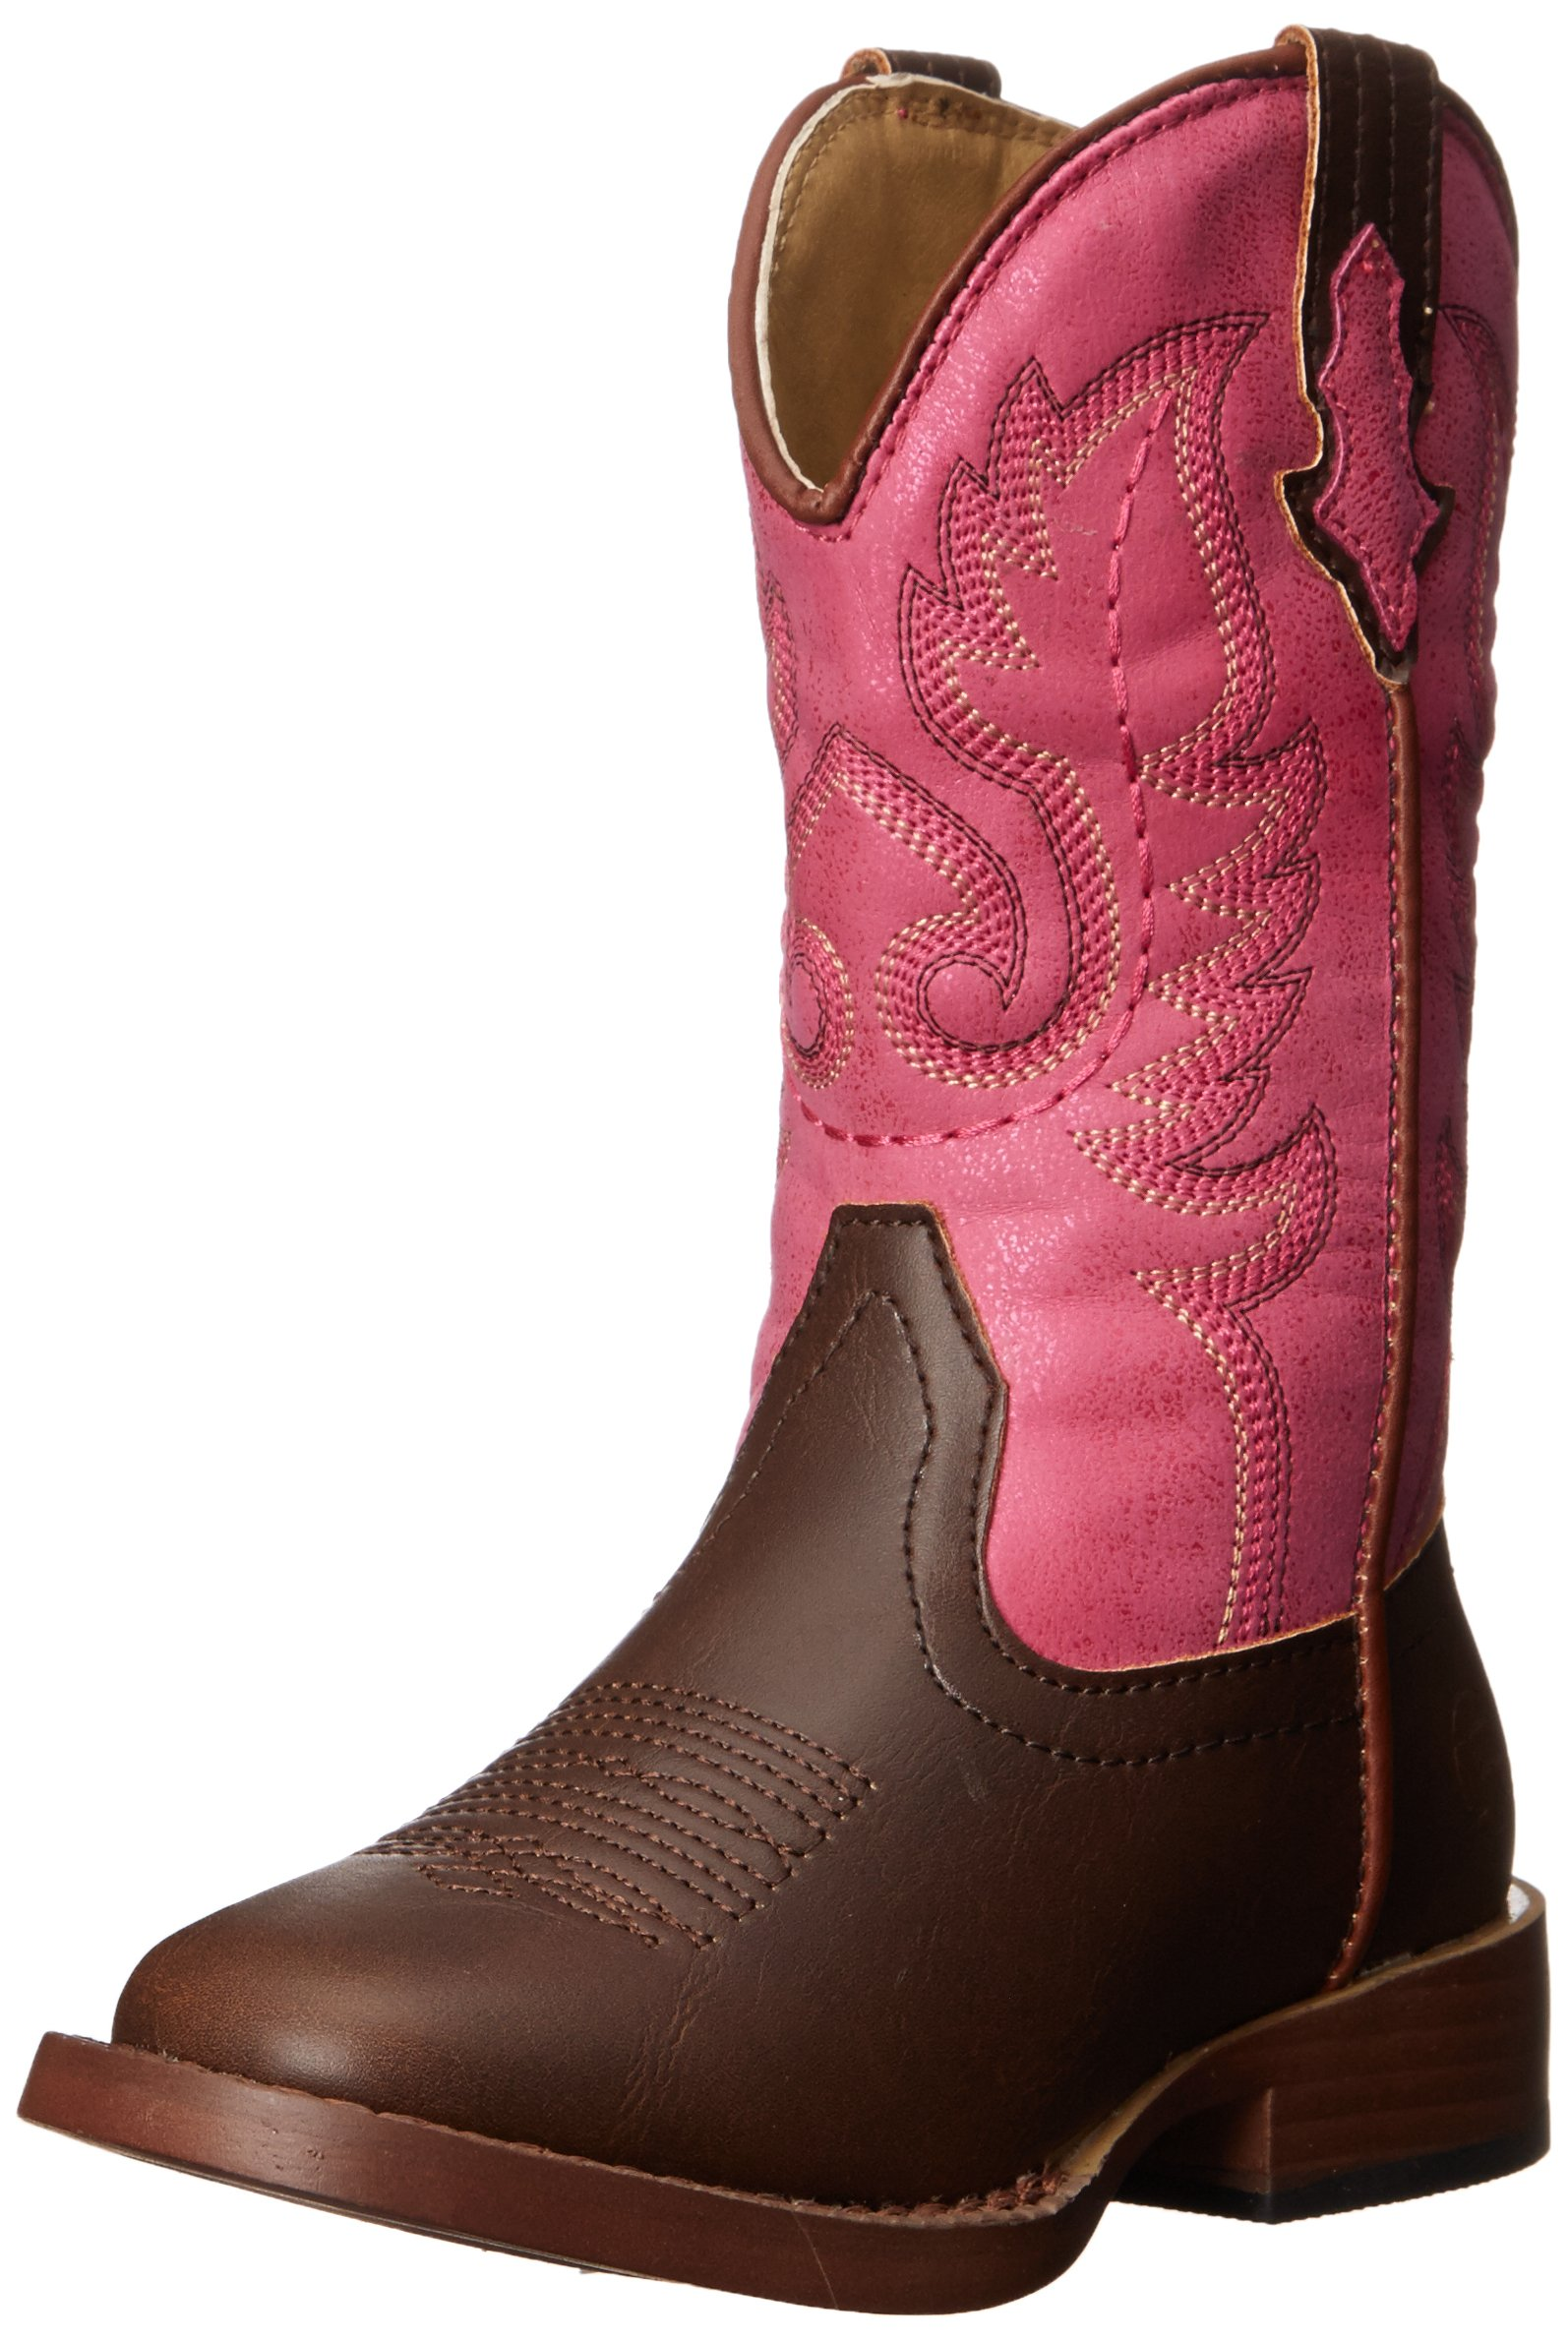 Roper Texsis Square Toe Cowgirl Boot (Toddler/Little Kid), Pink, 3 M US Little Kid